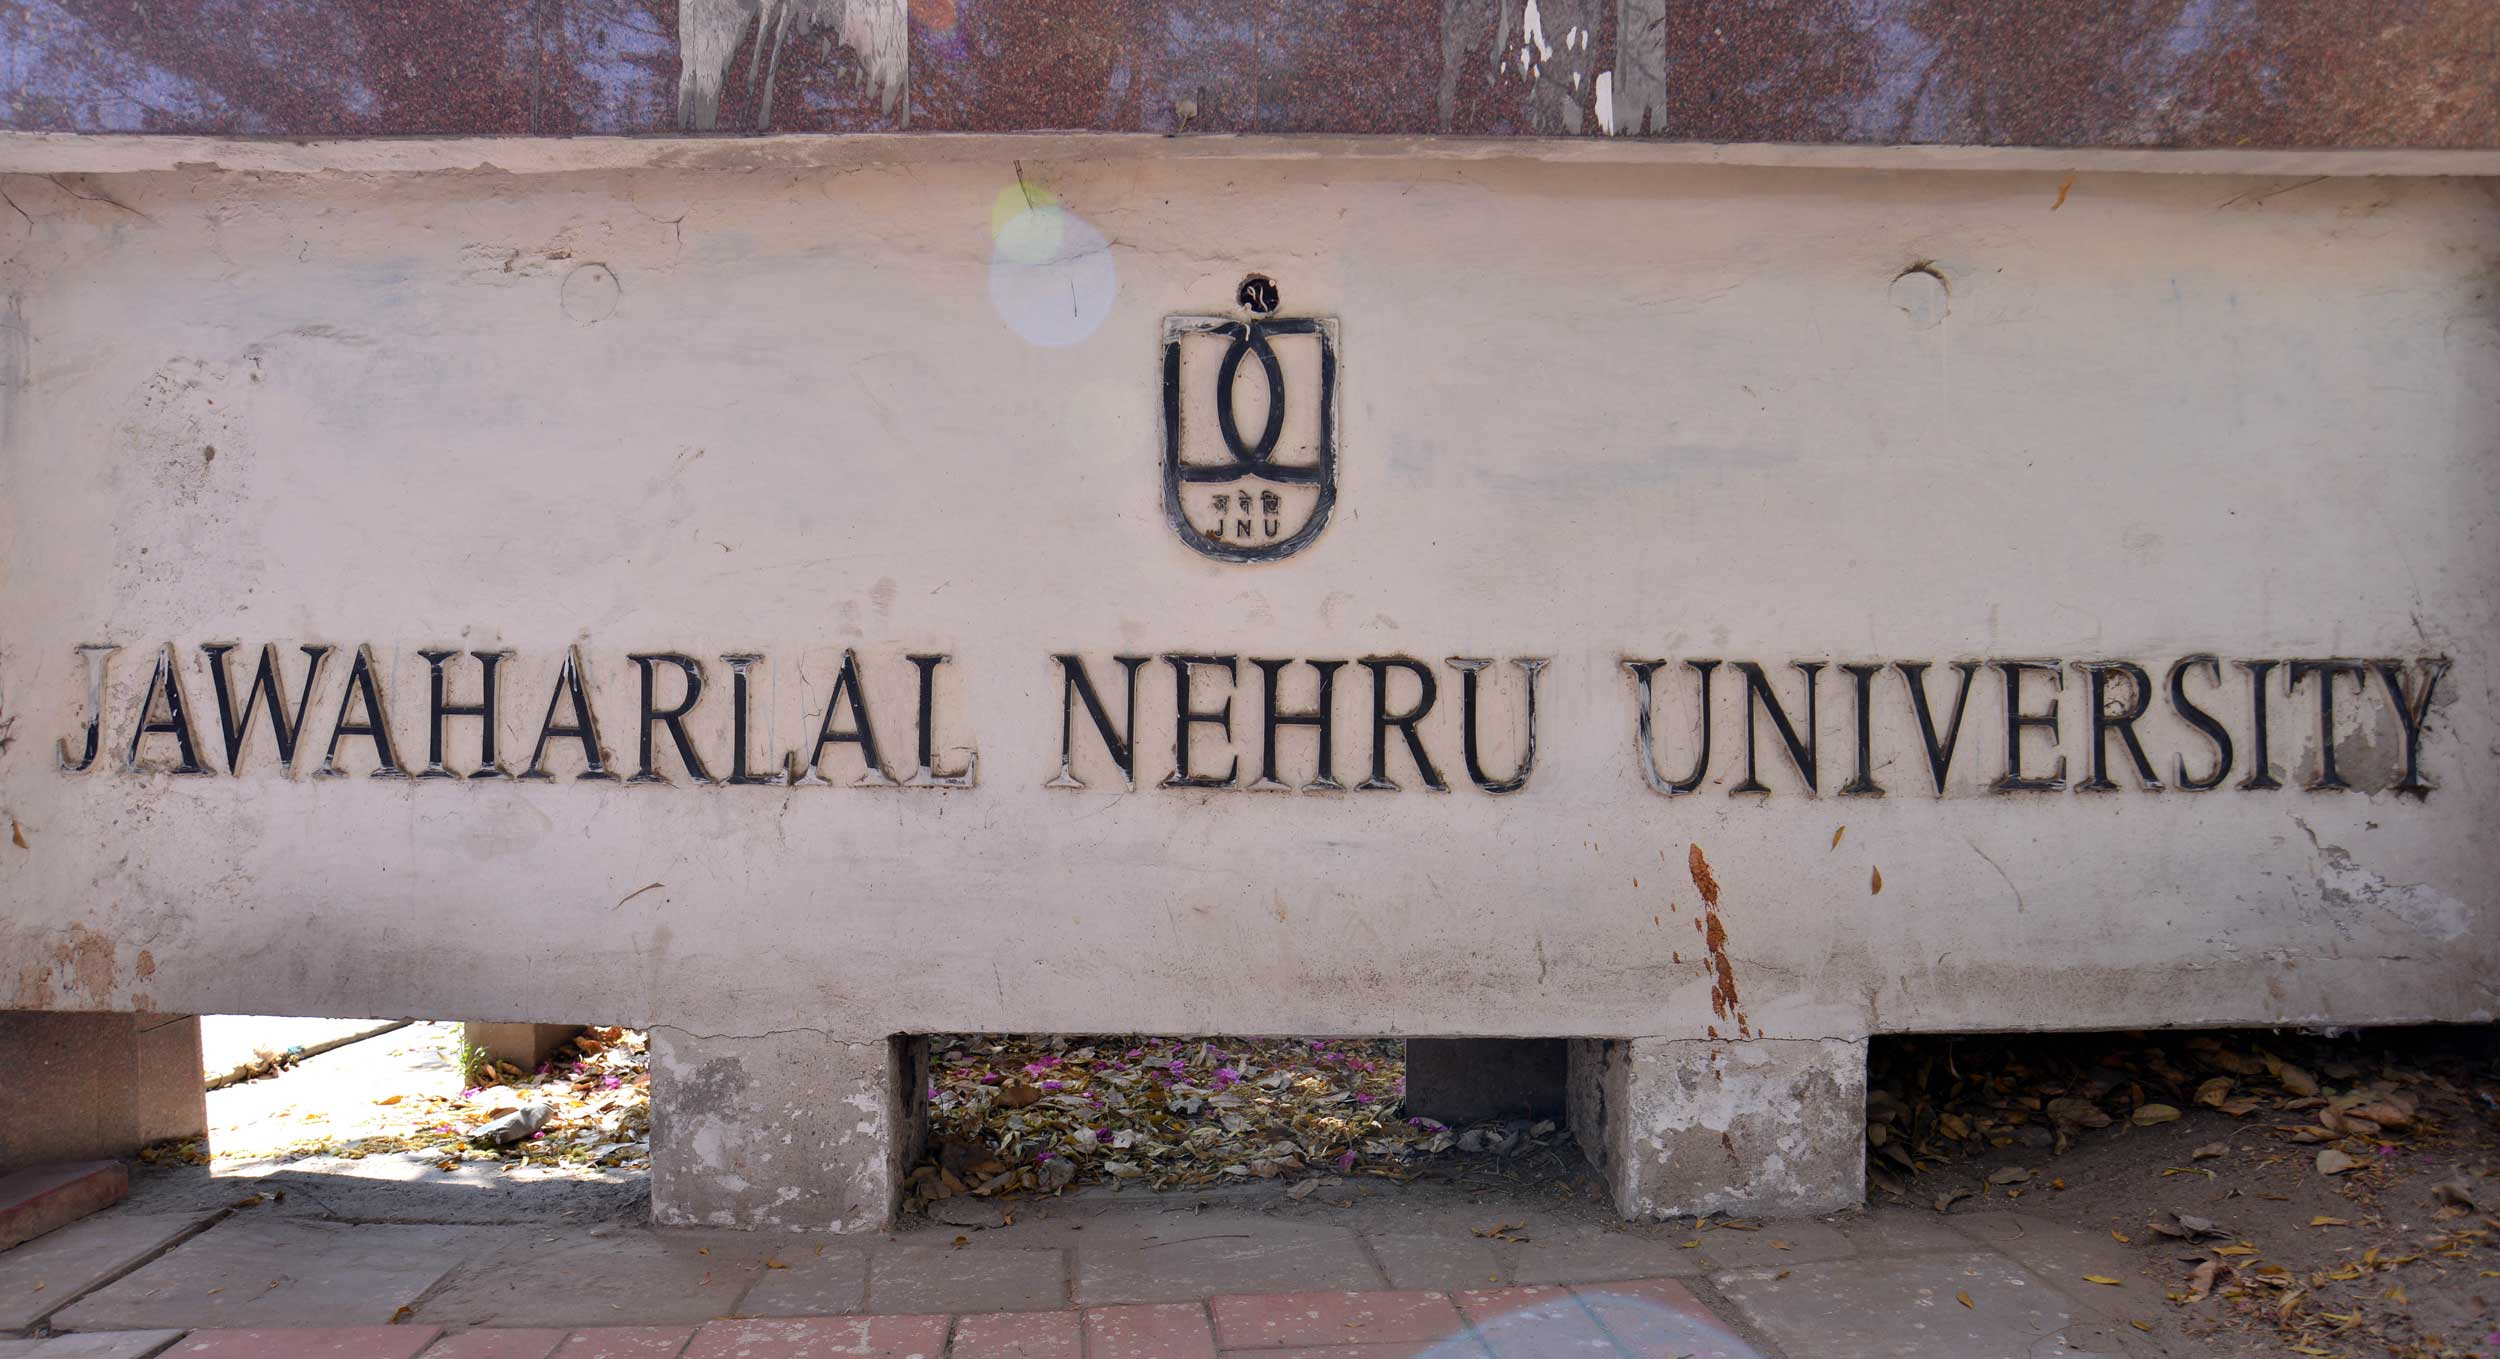 The university is in a deadlock situation over the decision of hike in hostel and mess charges taken by the administration, which has had students up in arms for over a fortnight